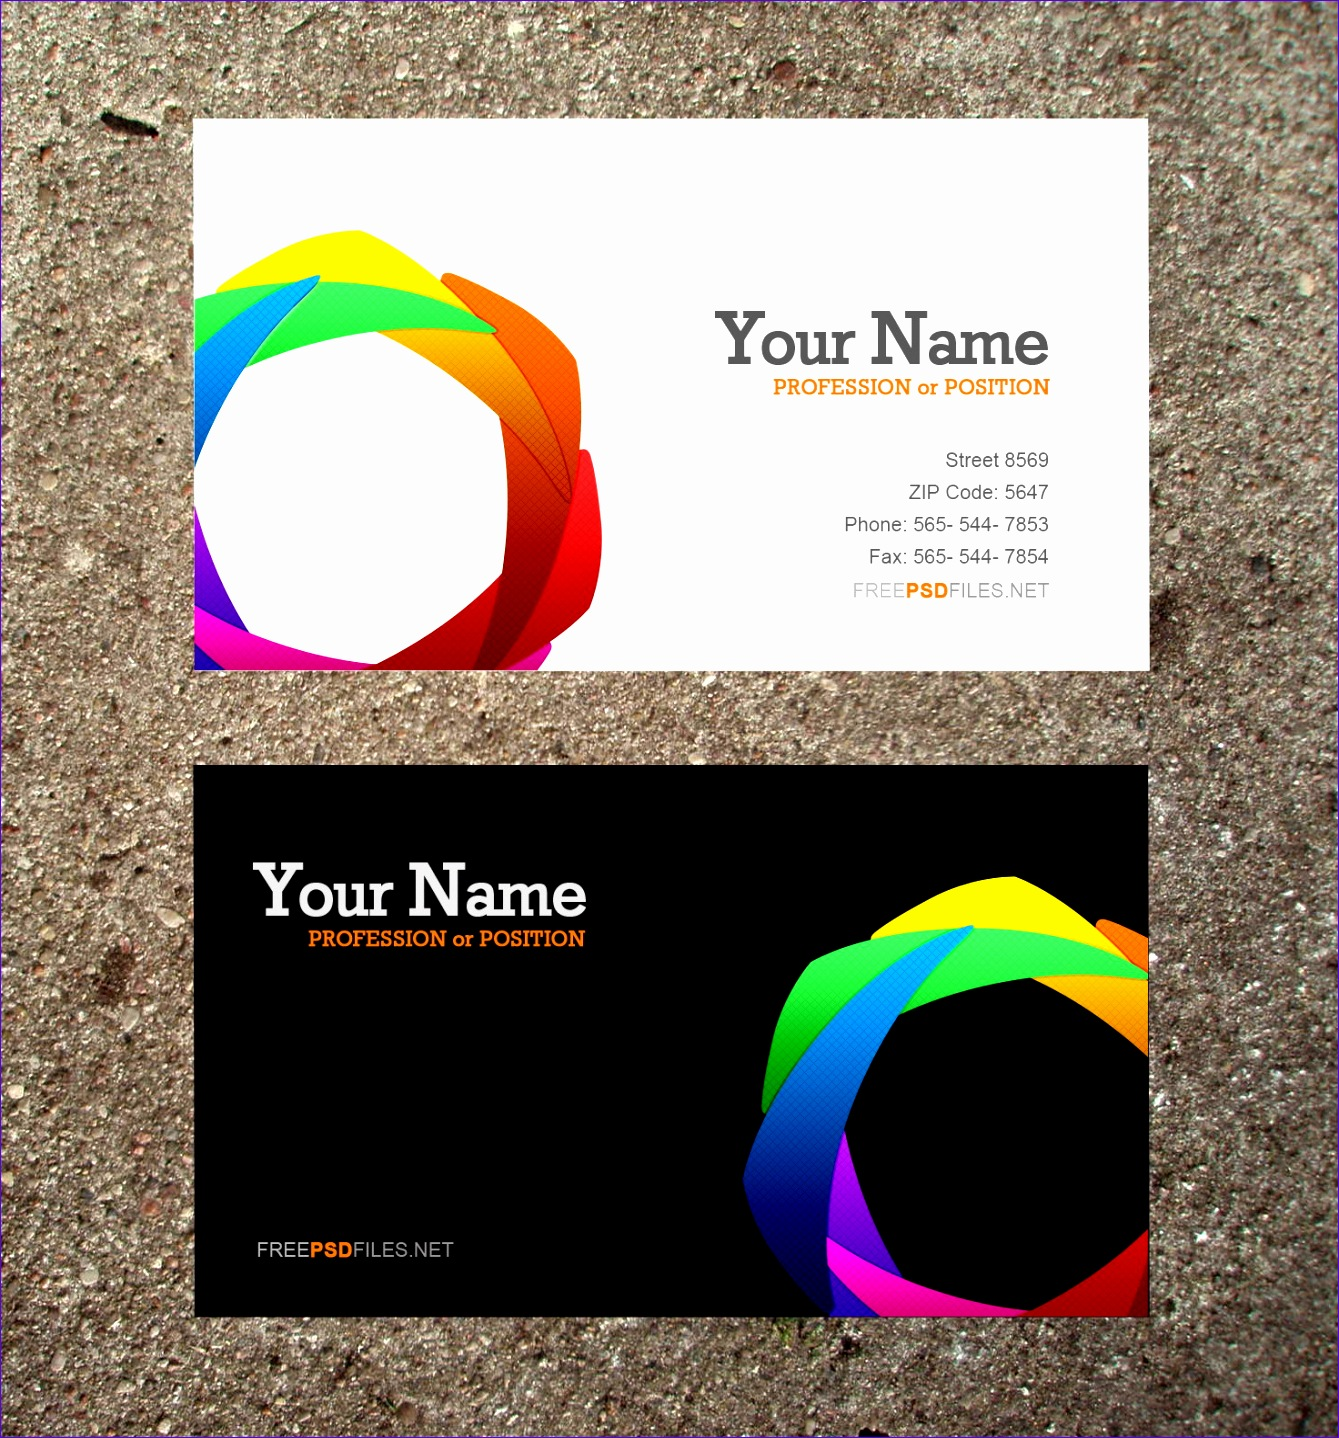 business card templates 13 business card templates13 SaMpkq